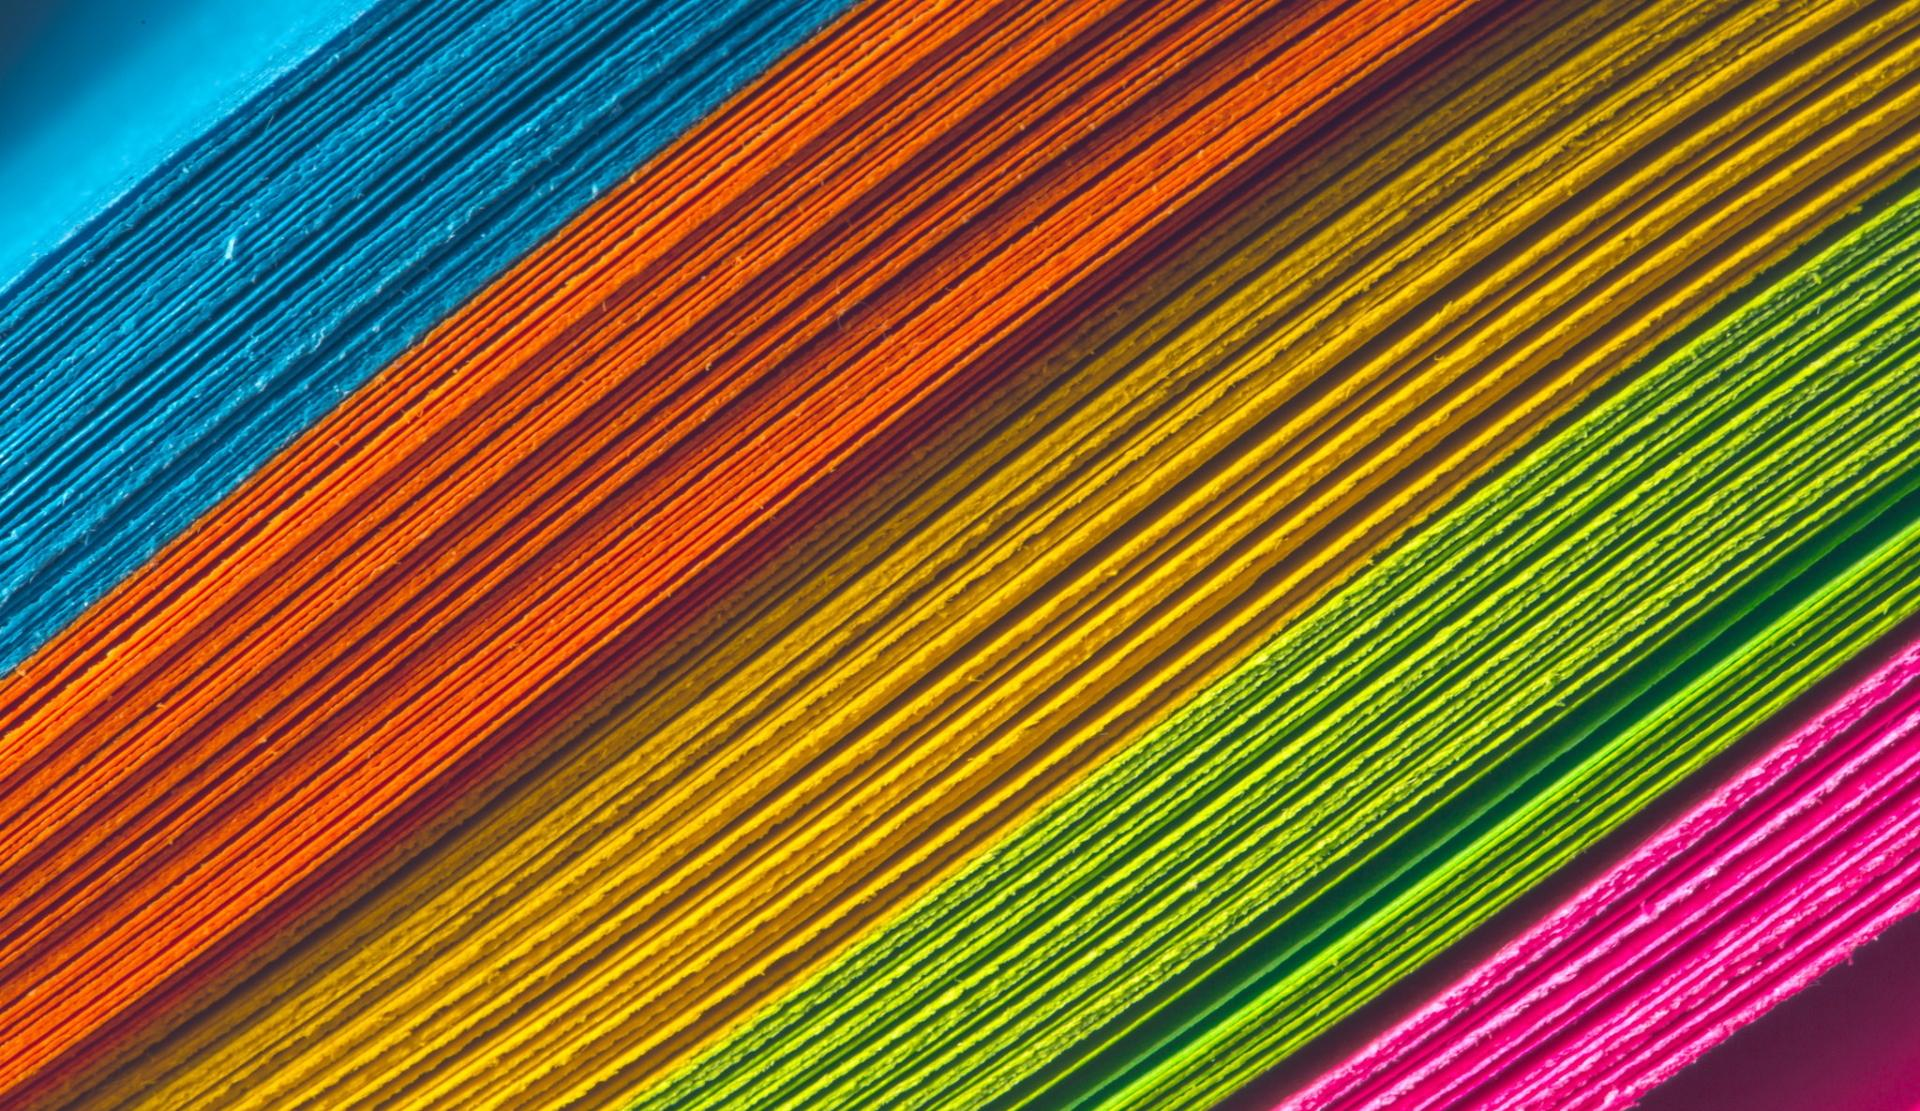 Rainbow Abstract Wallpaper HD Download